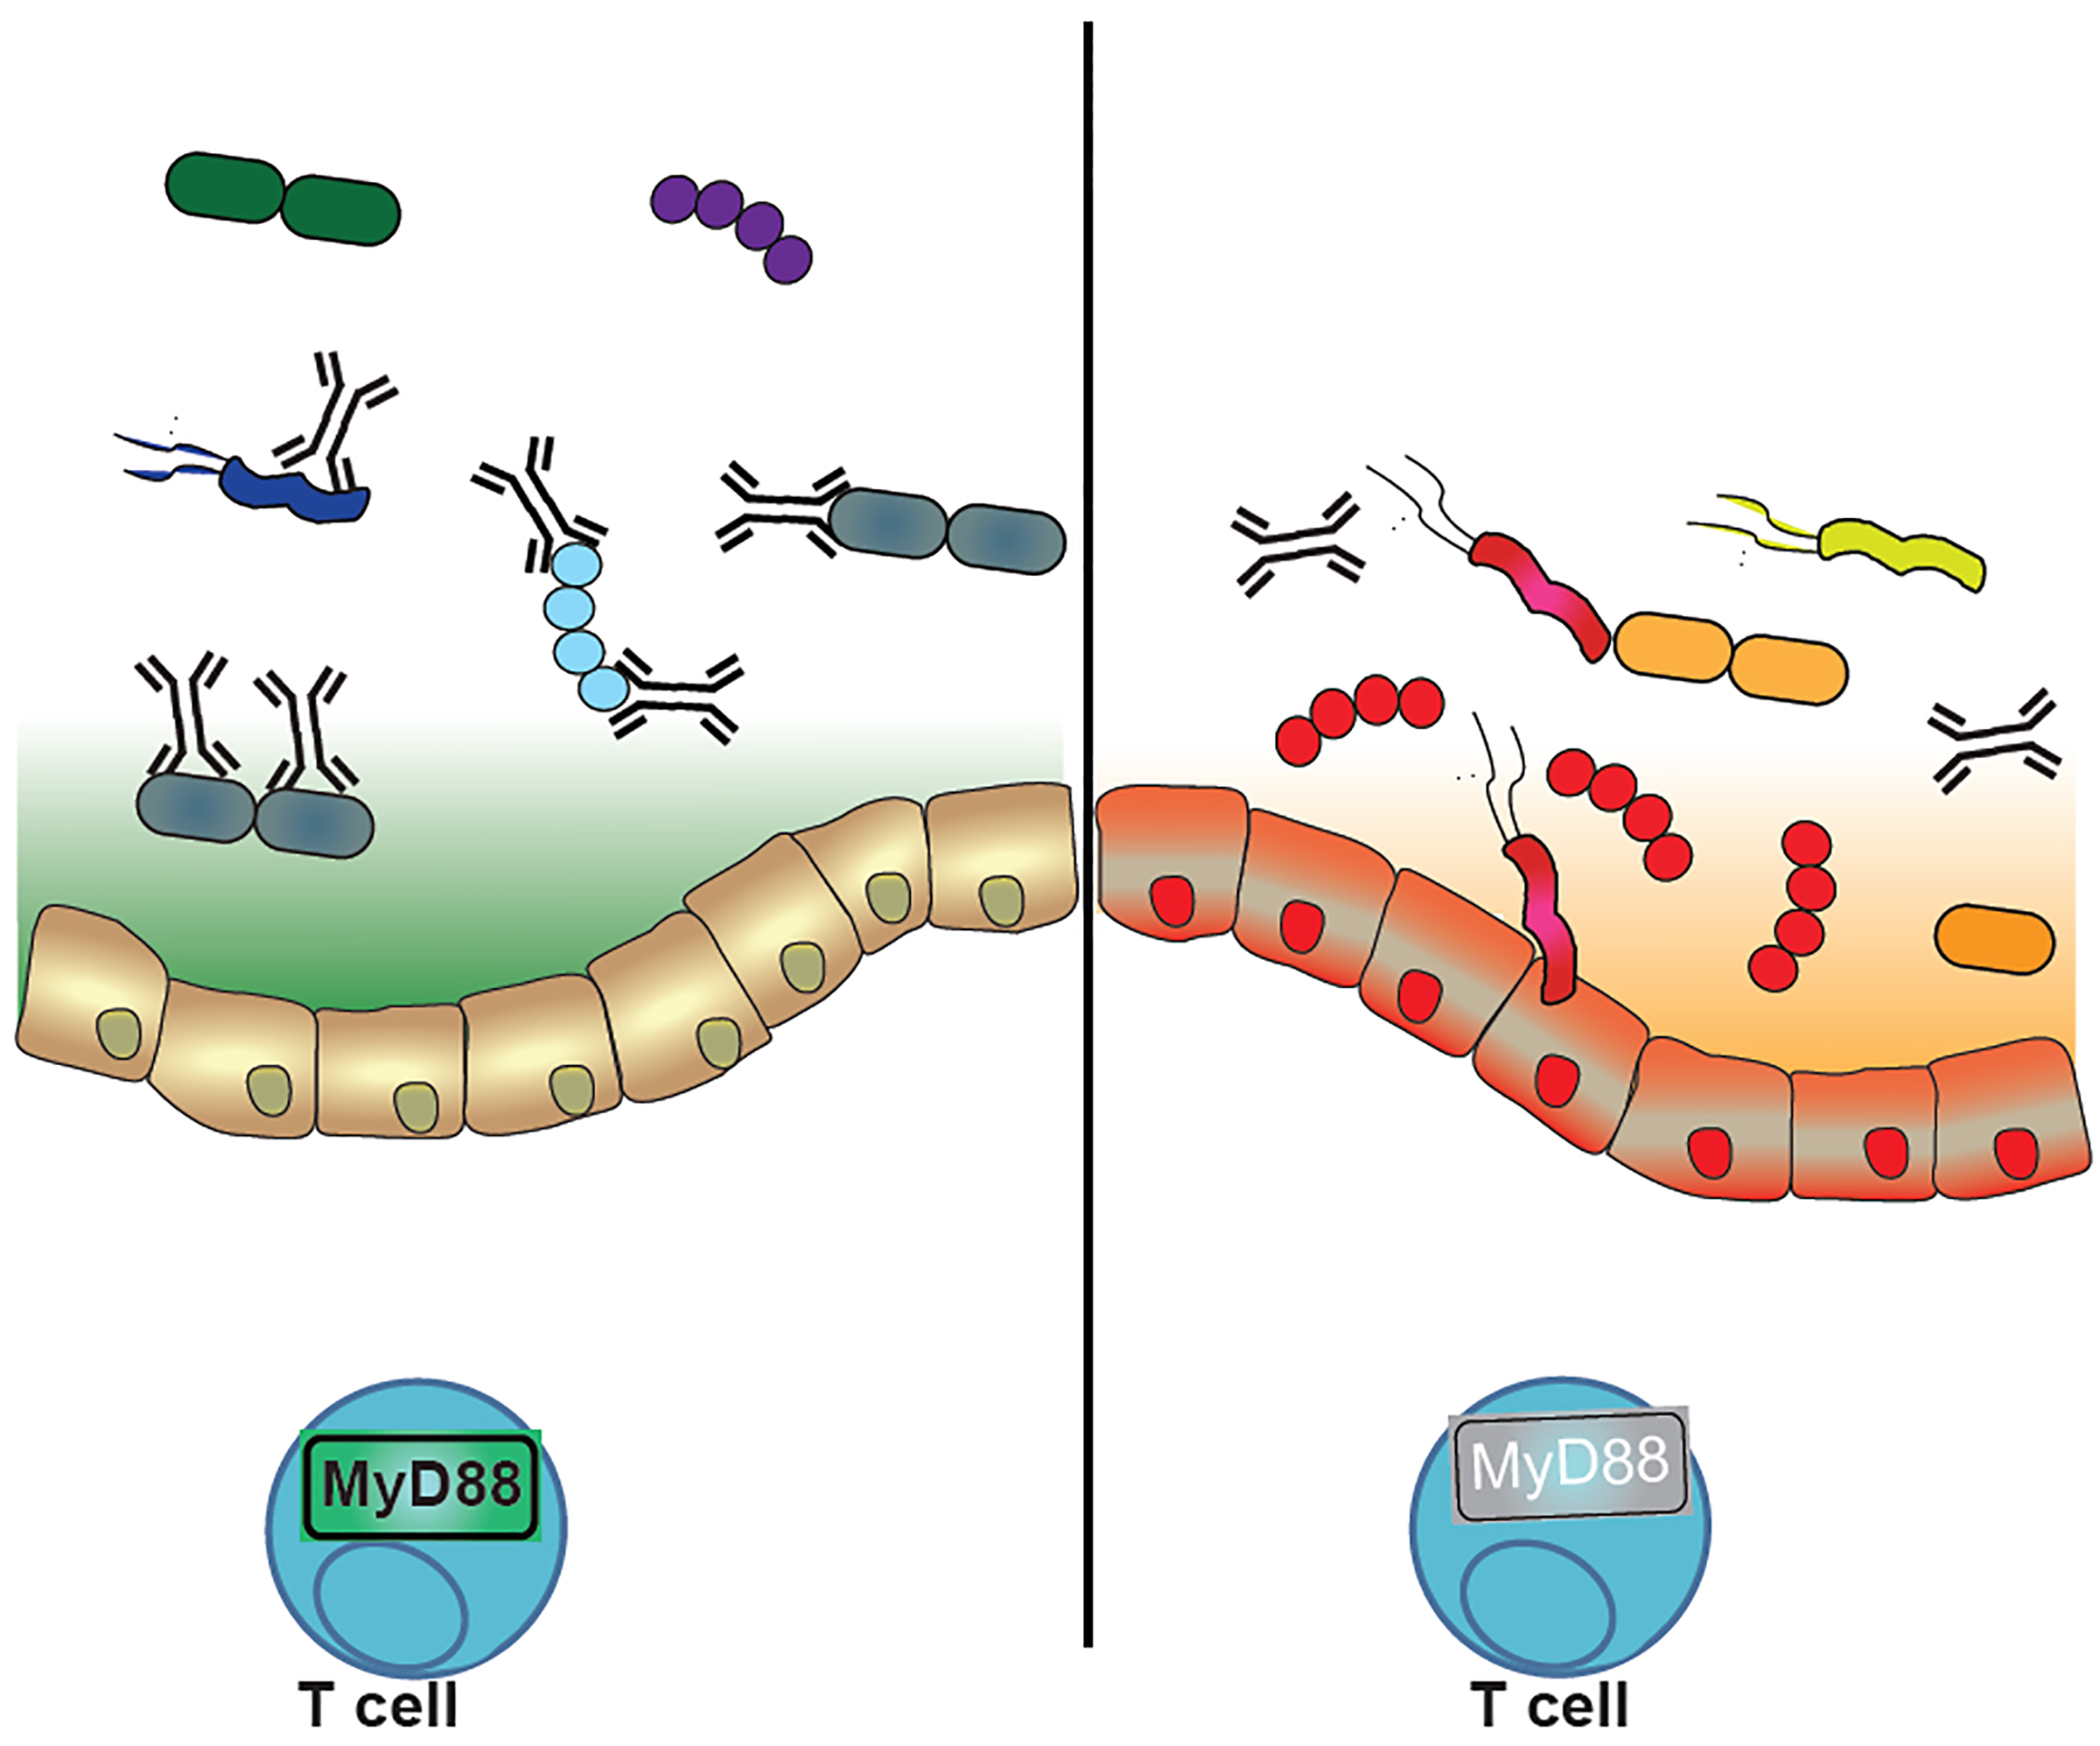 """(Left) When the immune system functions properly (MyD88 is active, green), IgA antibodies bind multiple species of bacteria, keeping the numbers and types of """"good"""" bacteria that inhabit the gut under control. (Right) When the immune system is disrupted (MyD88 is inactive, gray), IgA binds bacteria less effectively, and the bacterial community becomes imbalanced, jeopardizing digestive health."""